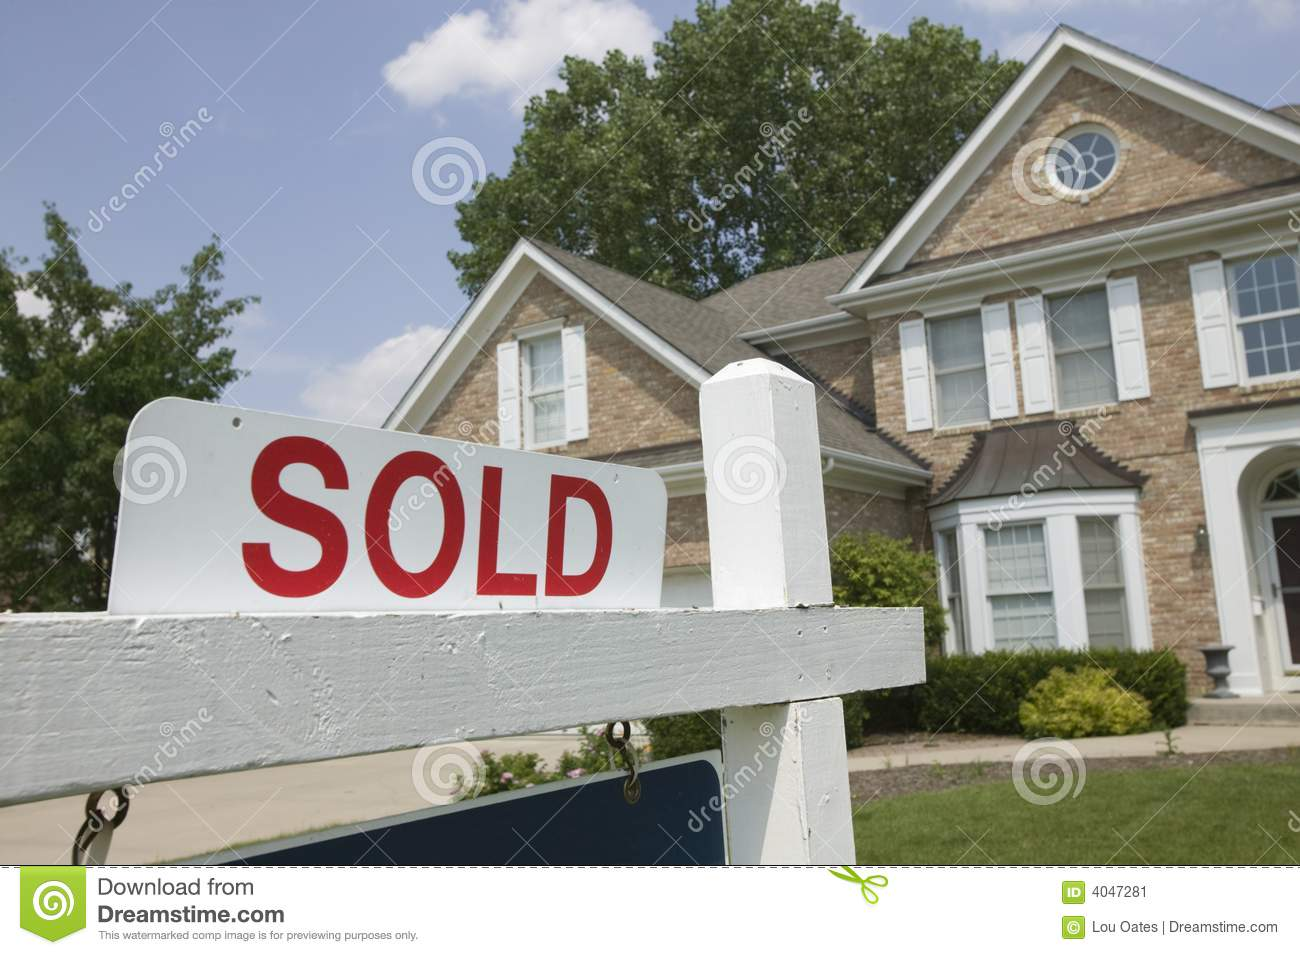 House Sold Sign Stock Image - Image: 4047281